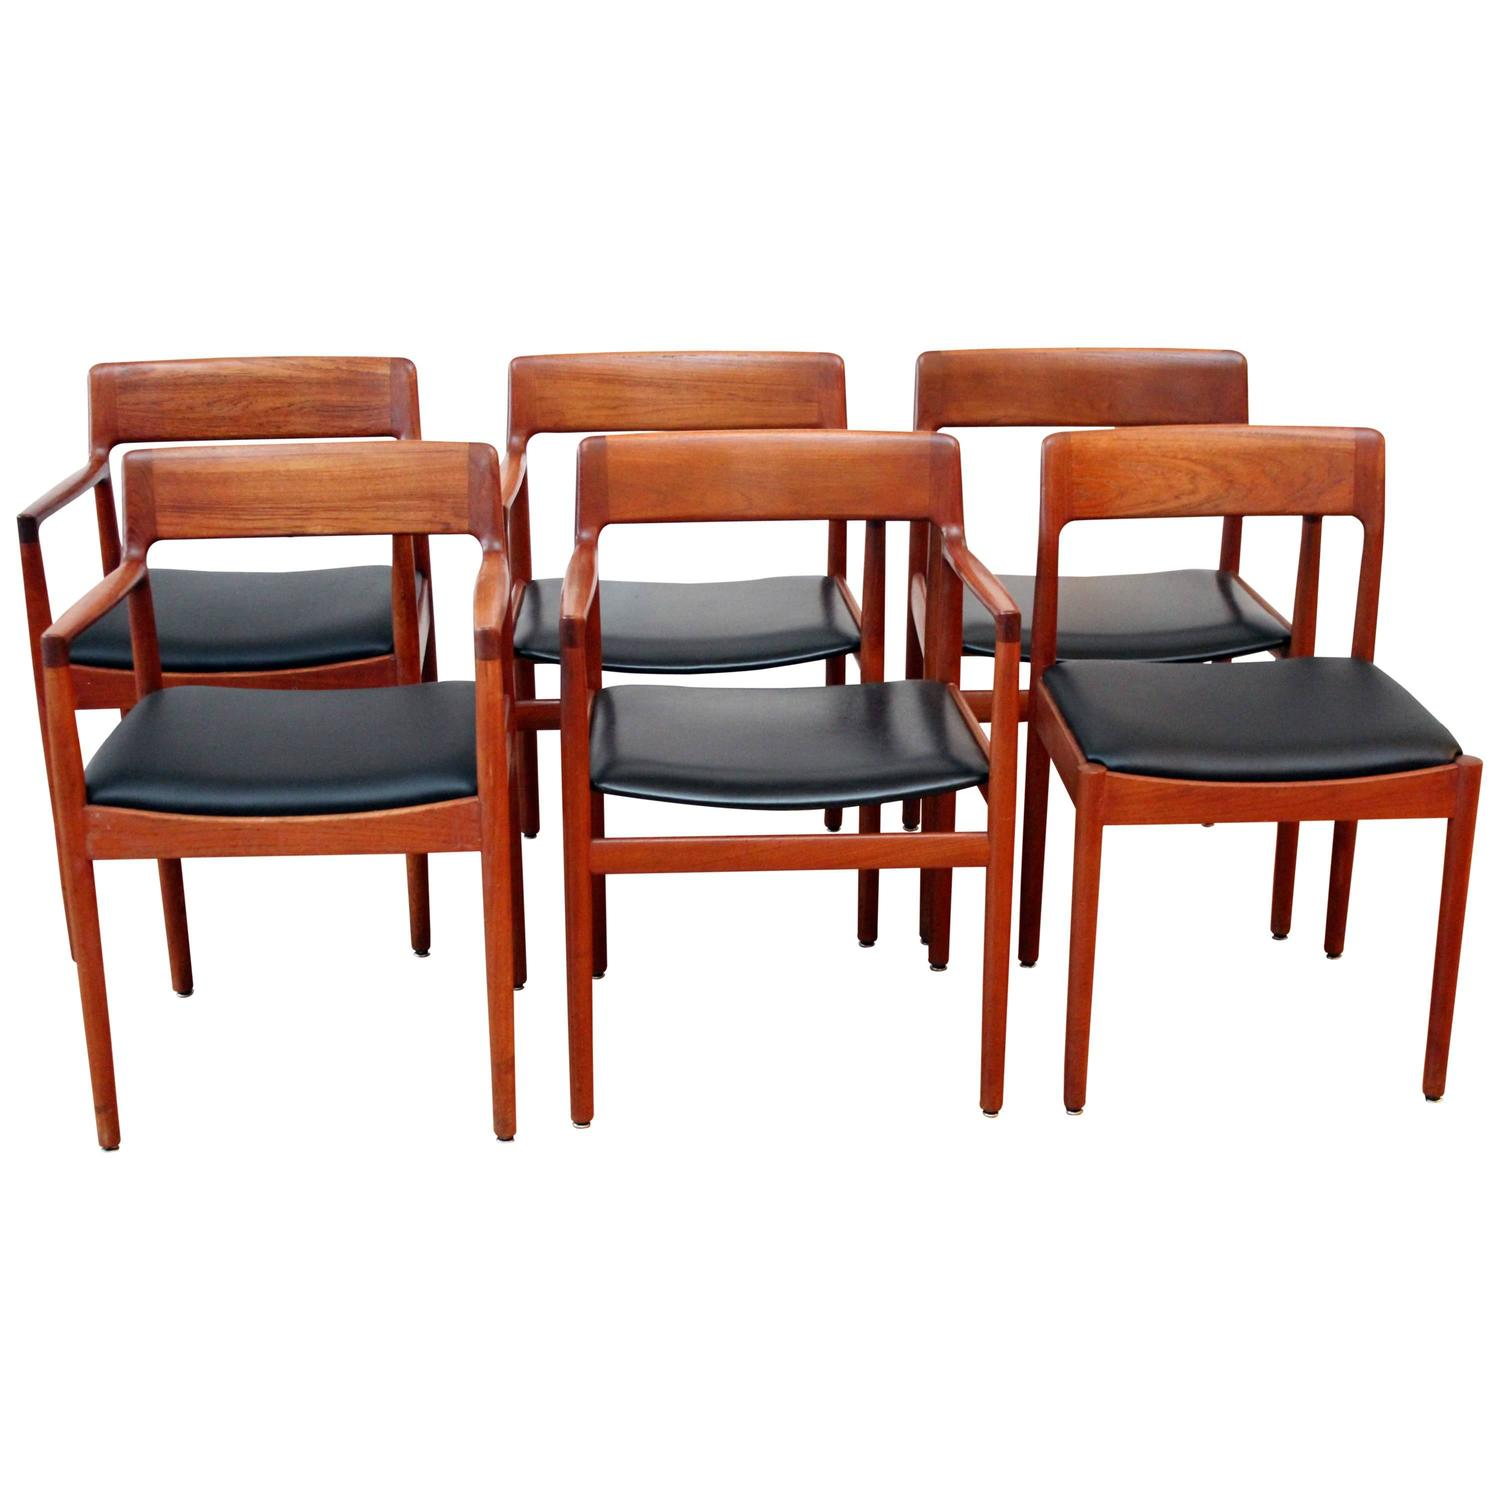 johannes norgaard danish teak dining chairs for sale at 1stdibs